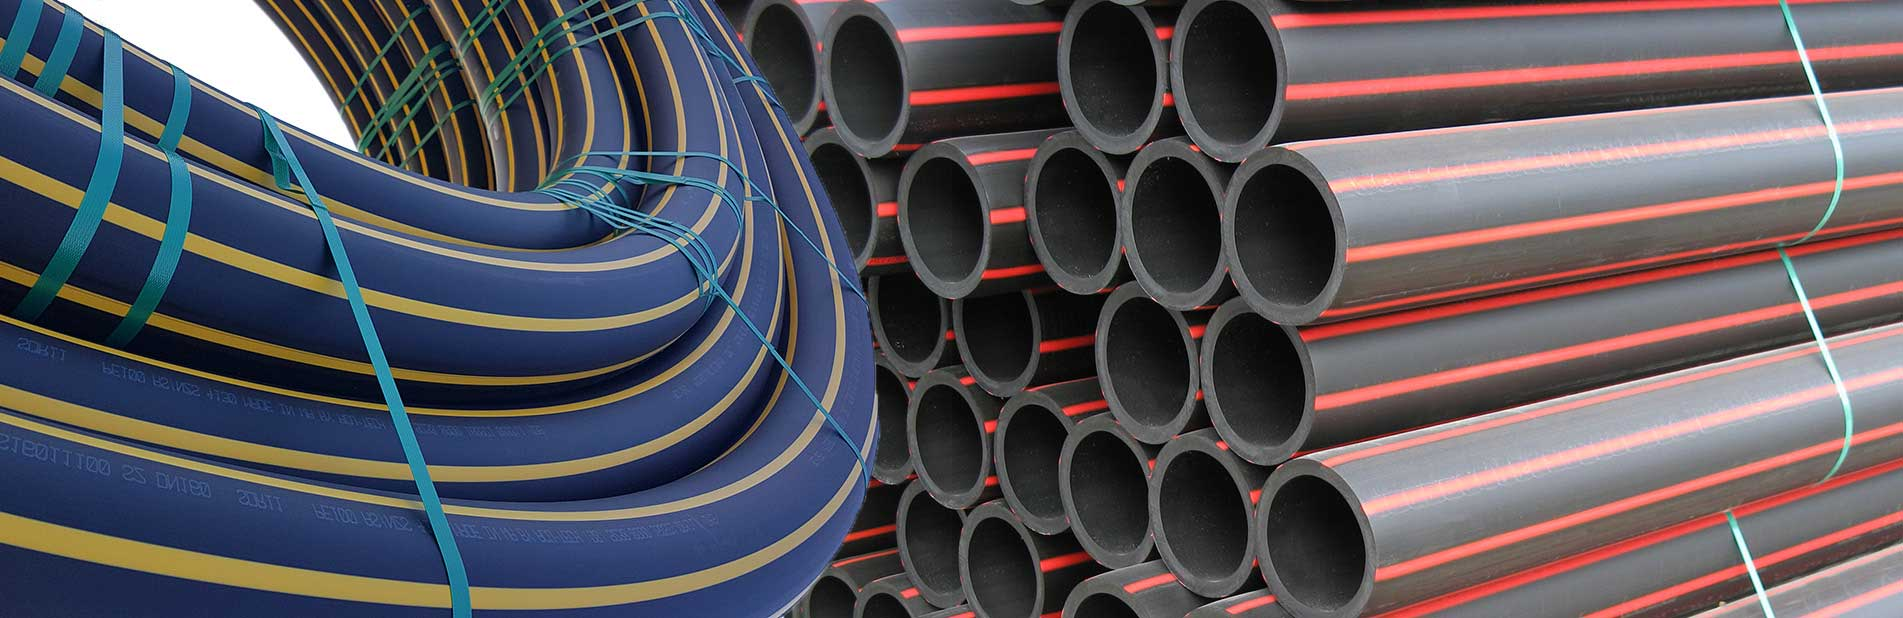 Acu-Tech's Poly Pipes are environmentally friendly - these HDPE enviropipes are more sustainable than using steel or concrete pipes.